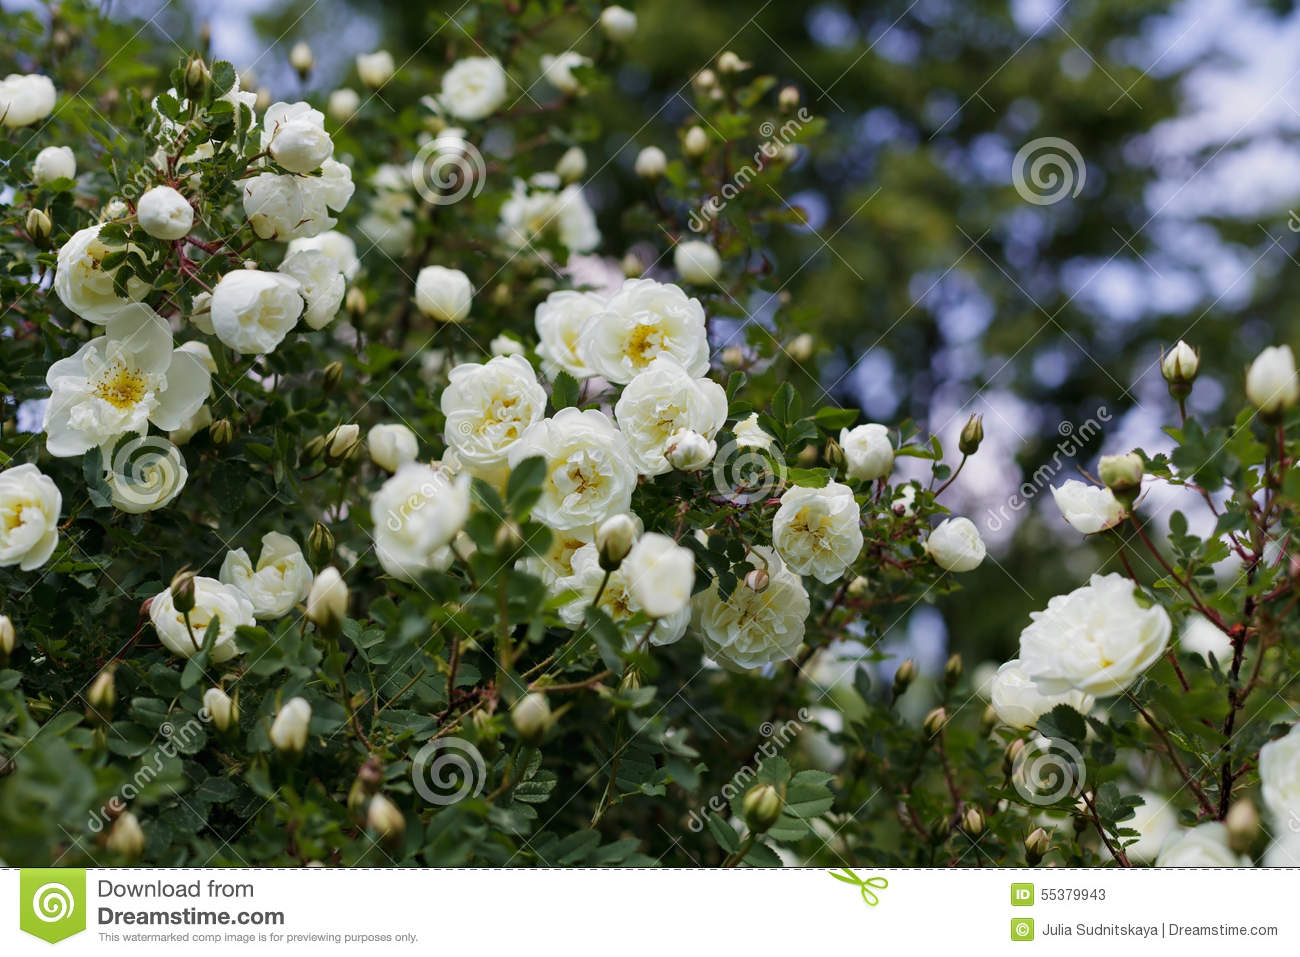 Beautiful Bush With White Flowers Of Wild English Rose In The Garden